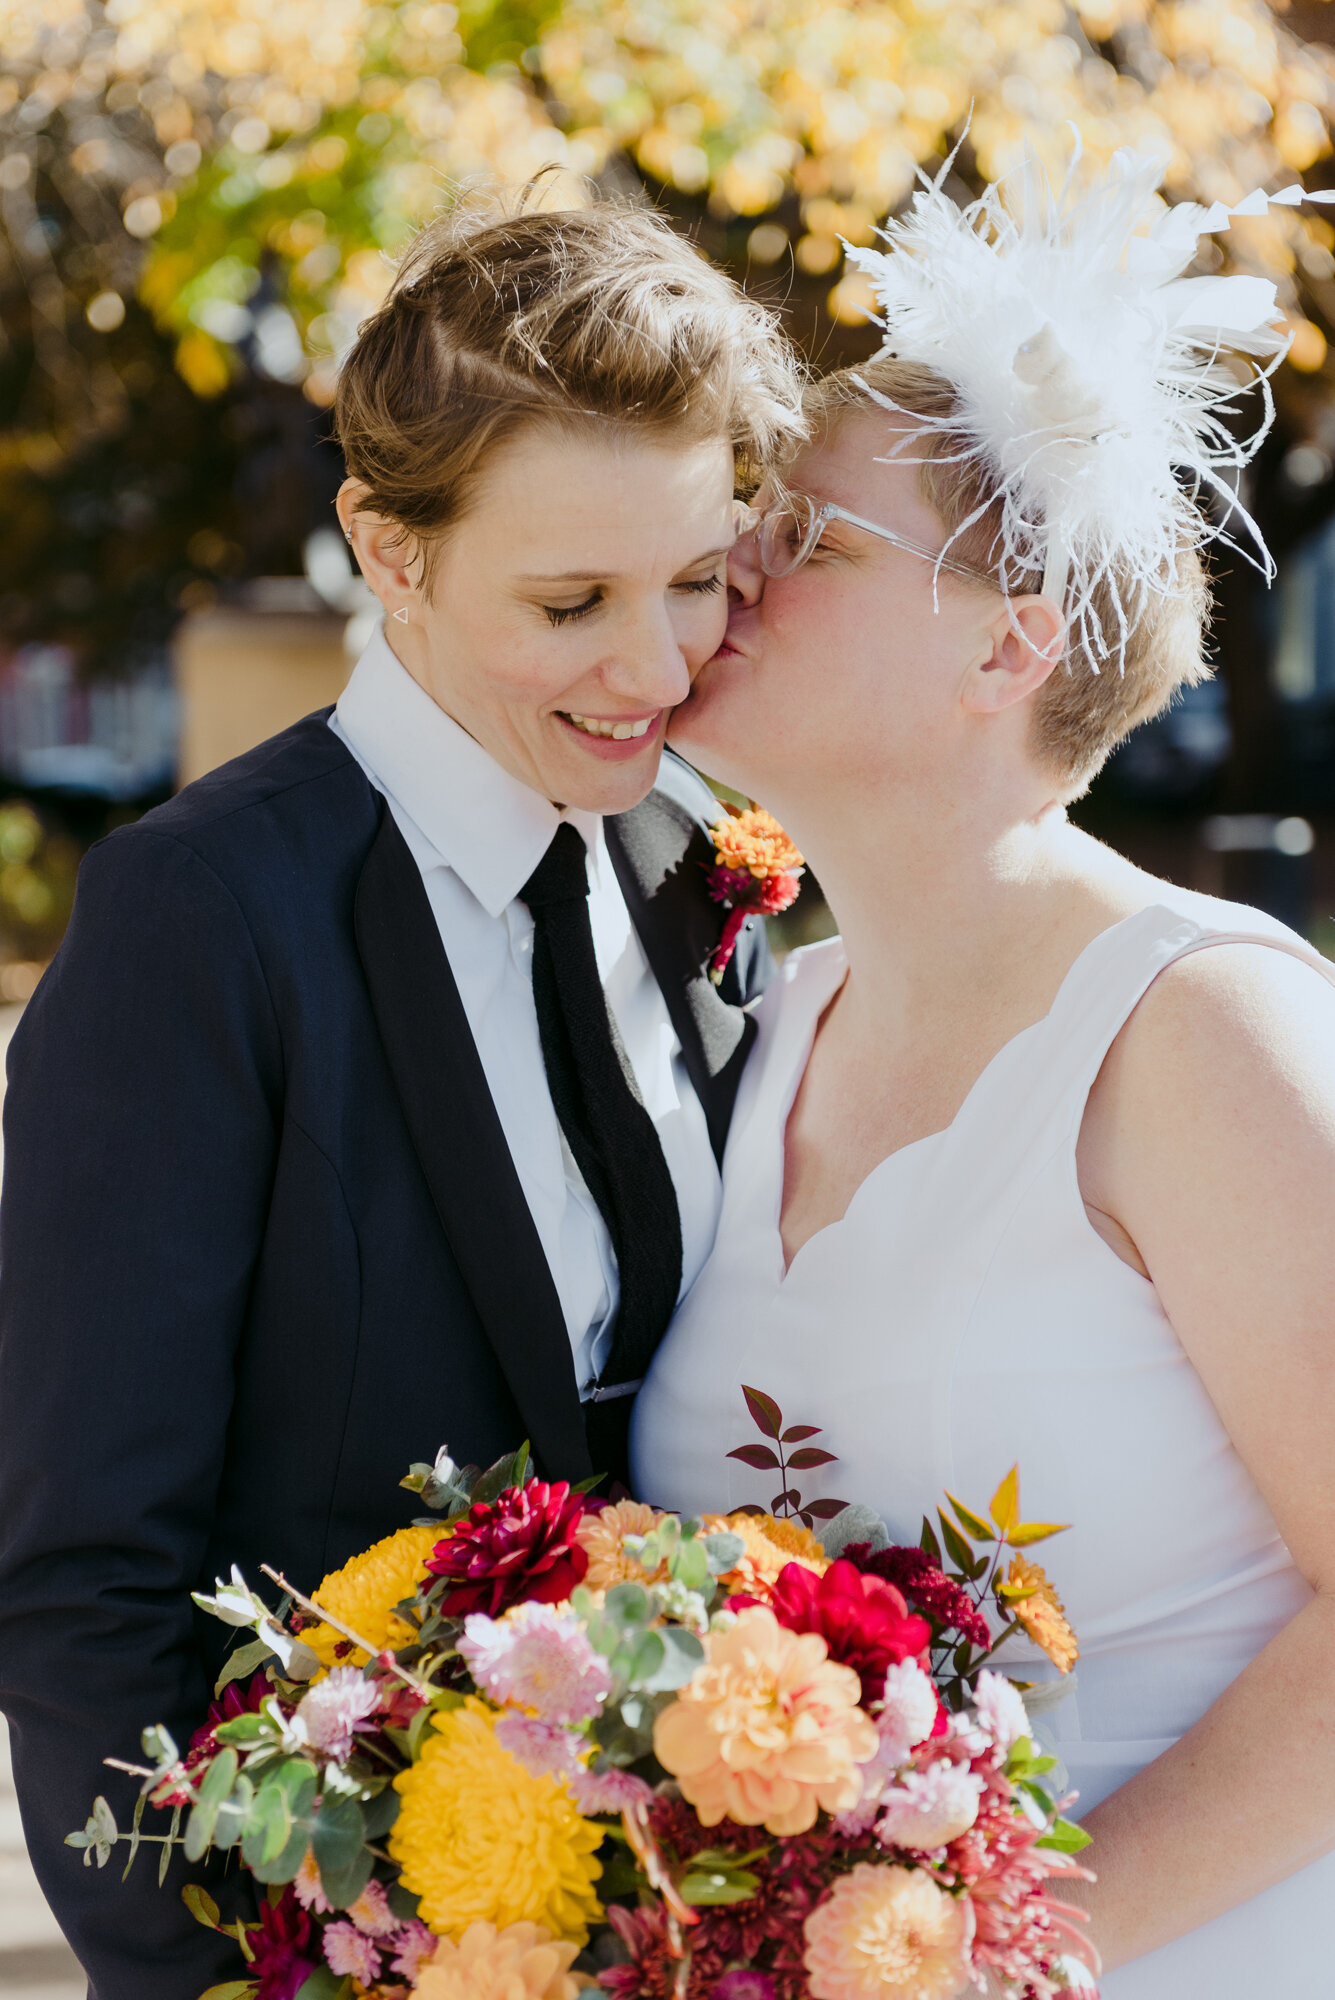 City Hall Wedding | Rivets & Roses | Photography by Tara Sloane